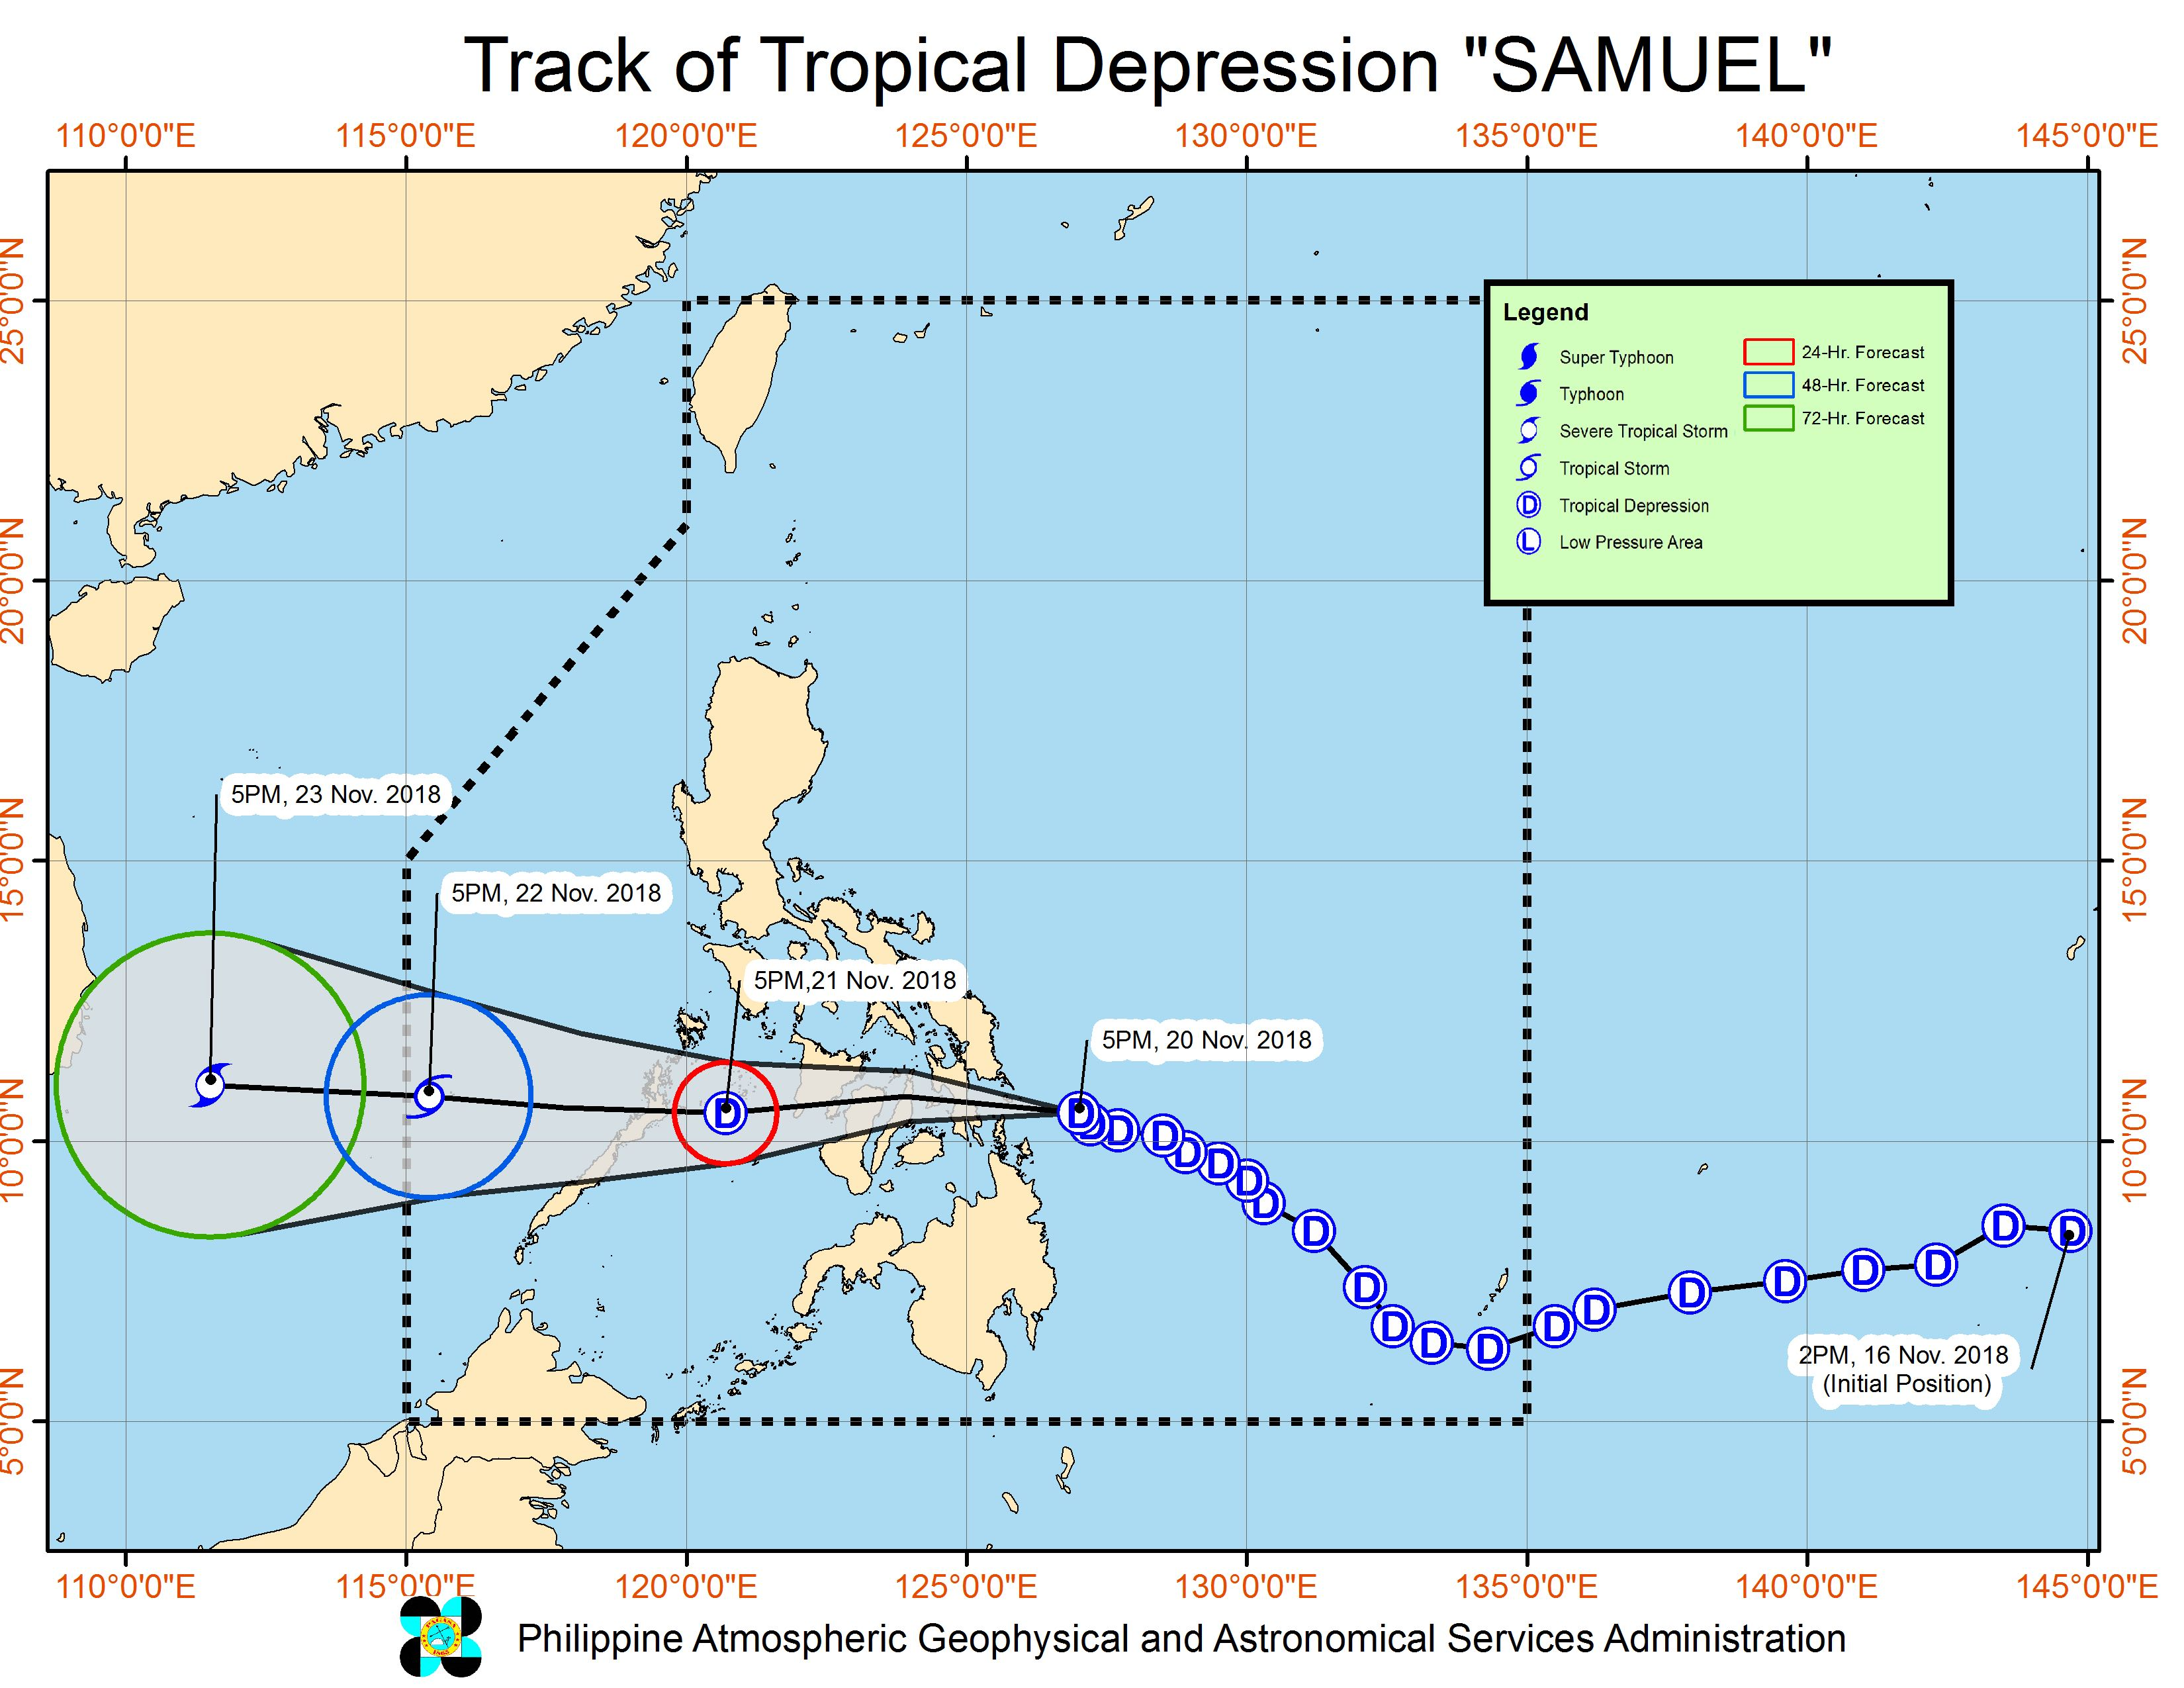 Forecast track of Tropical Depression Samuel as of November 20, 2018, 8 pm. Image from PAGASA